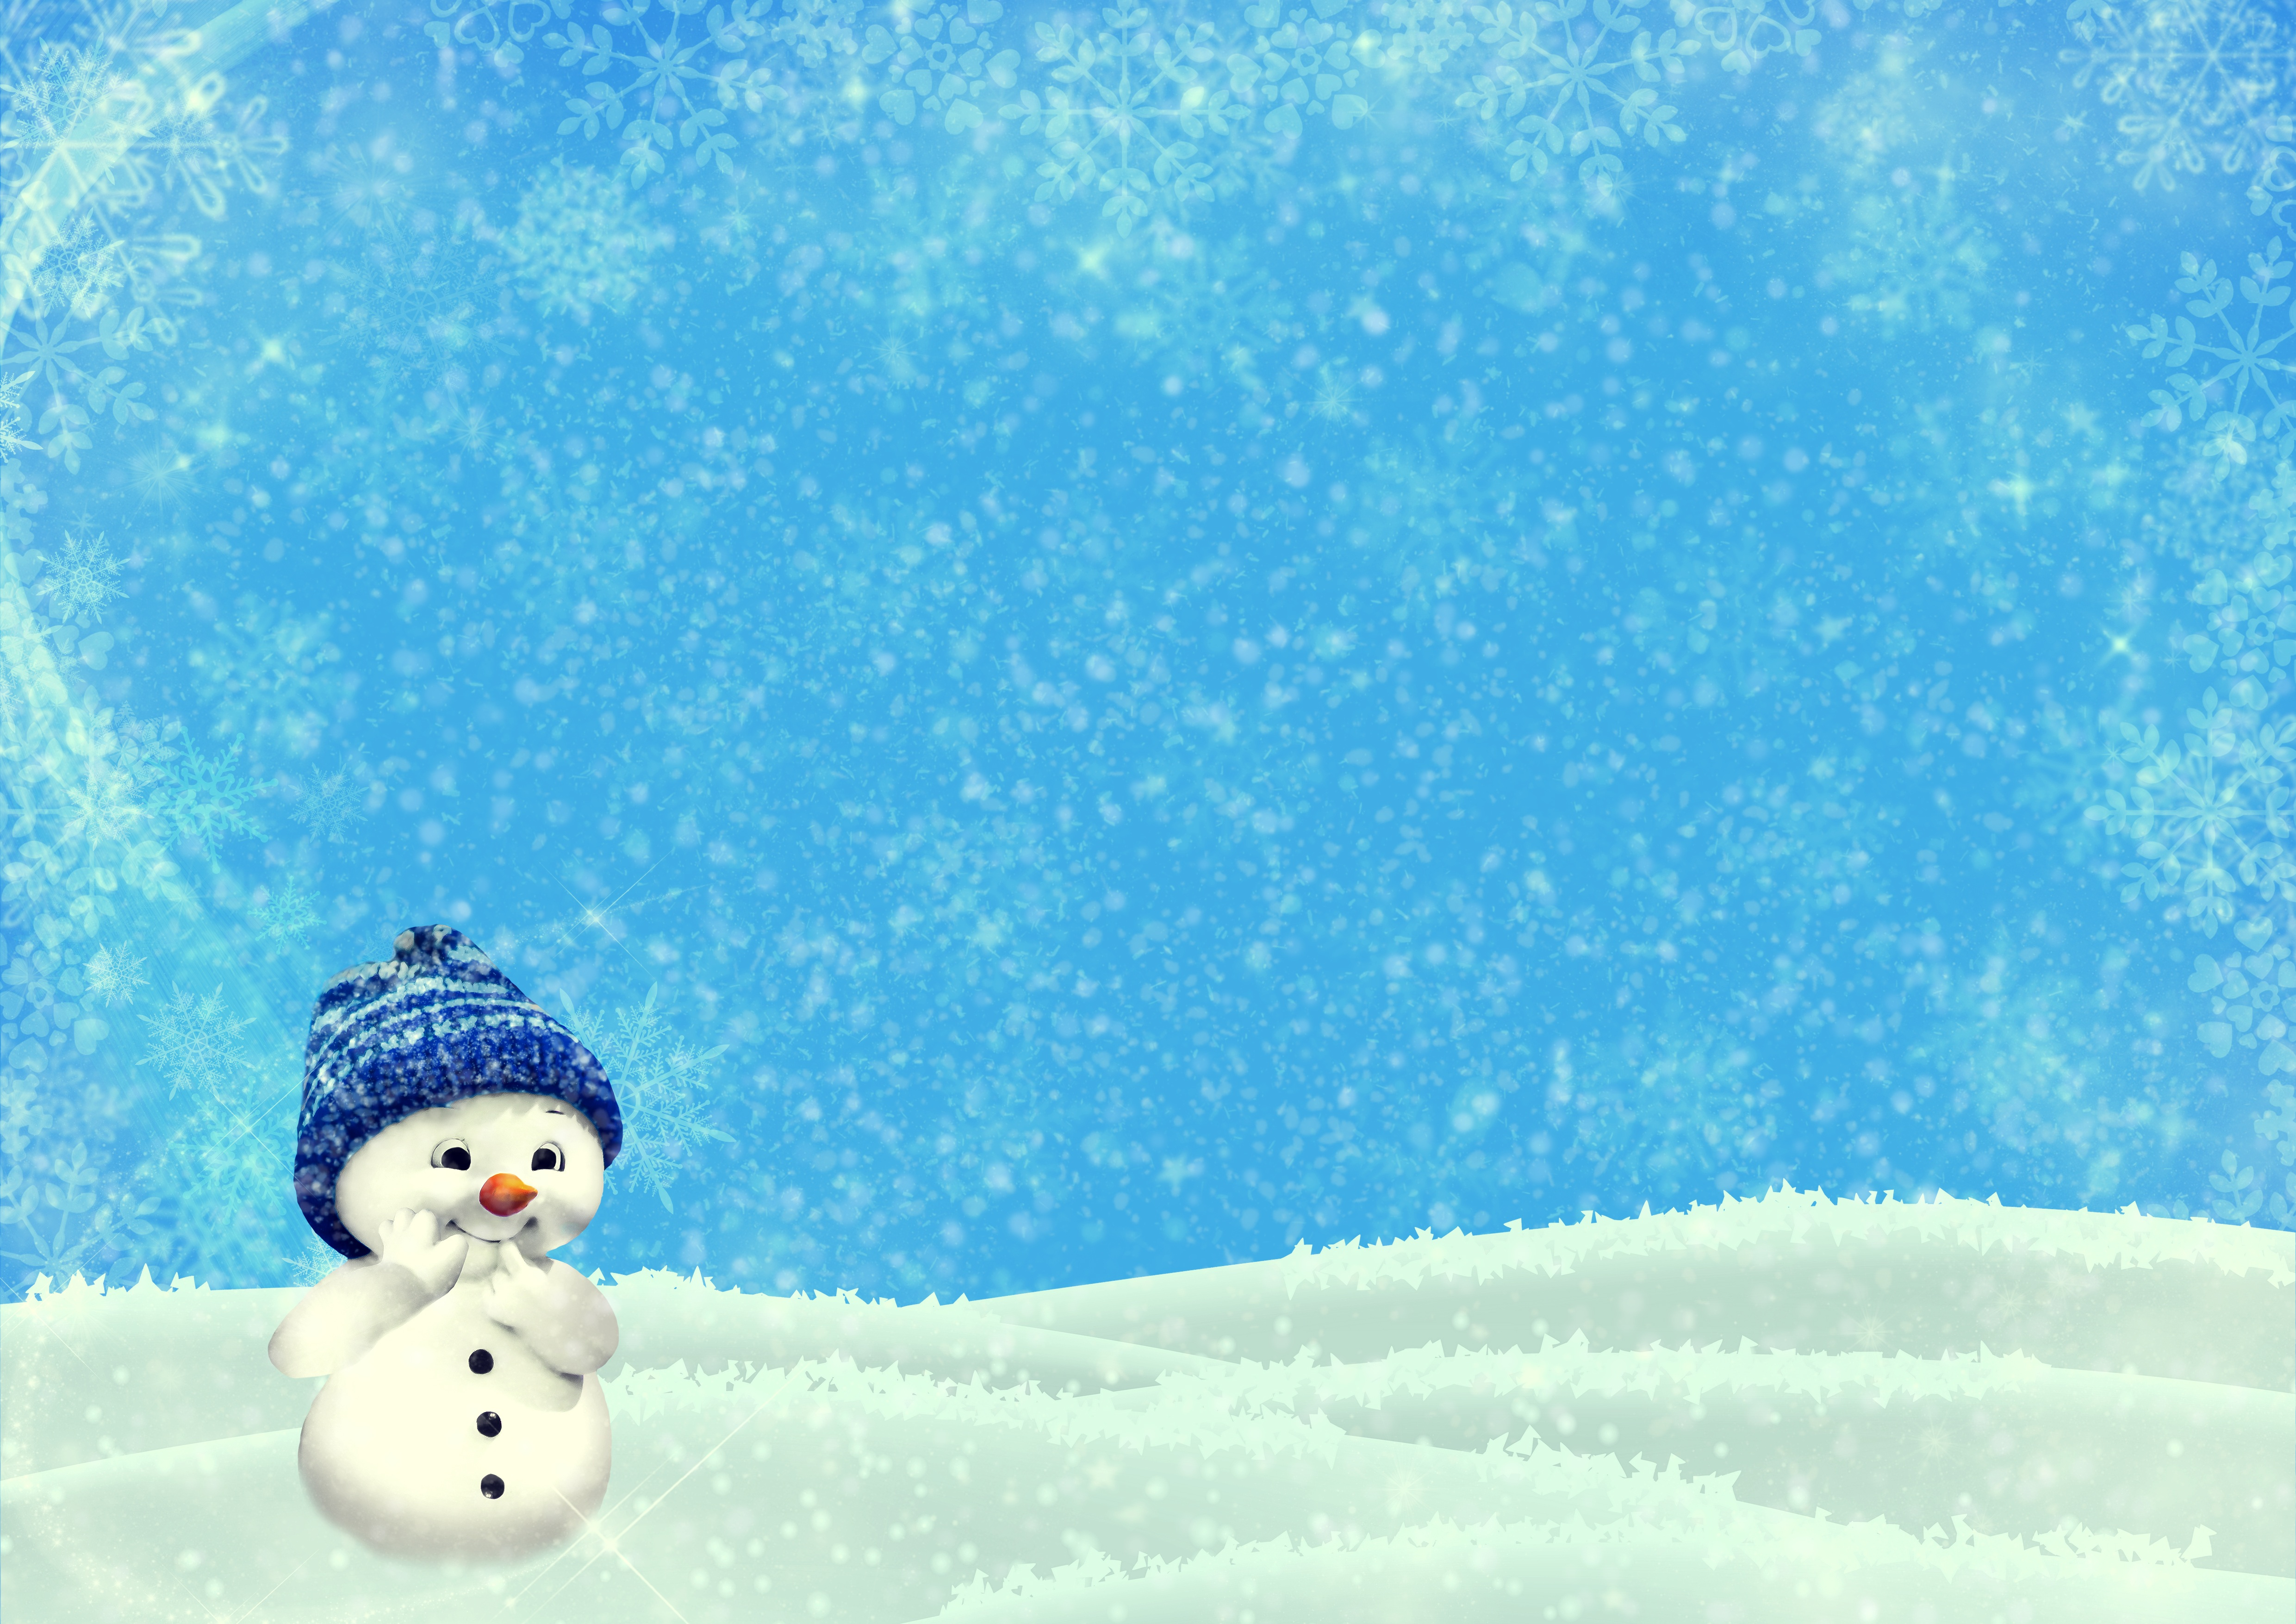 100235 download wallpaper Holidays, Snowman, Winter, Christmas, New Year, Nice, Sweetheart, Illustration screensavers and pictures for free